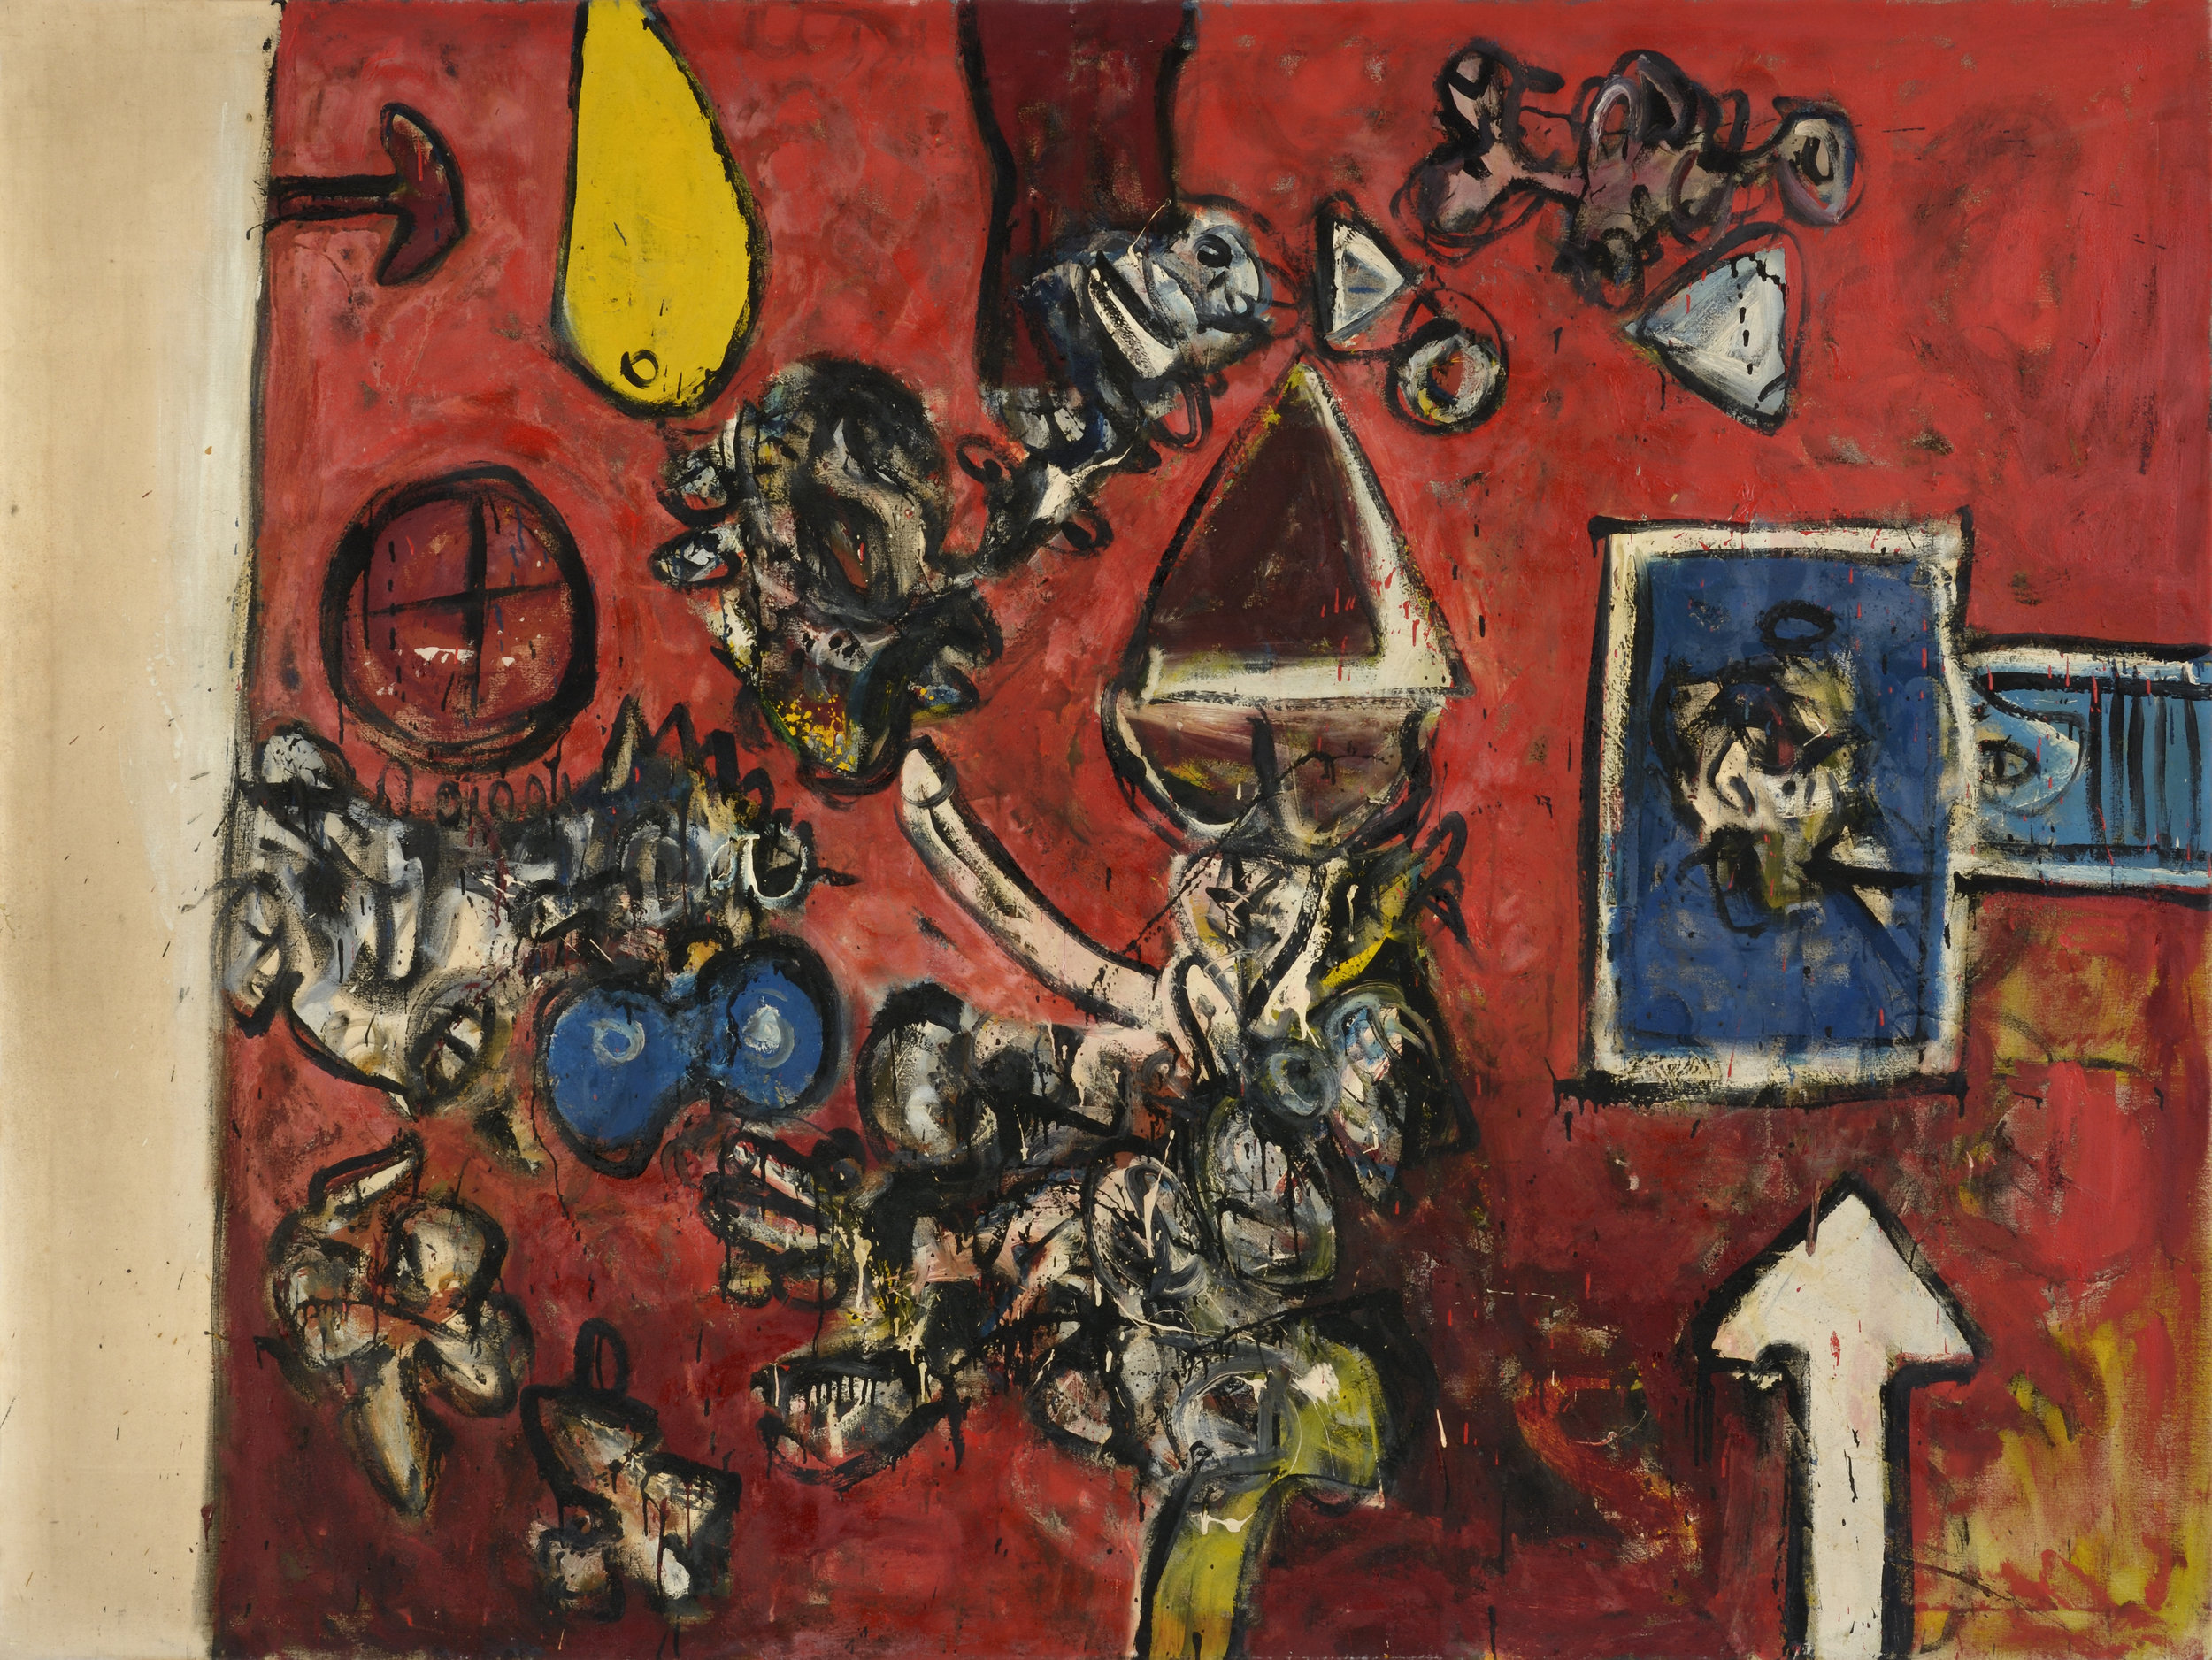 Alan Davie  , Priest of the Red Temple,  1956, oil on canvas. Courtesy of Alan Wheatley Art